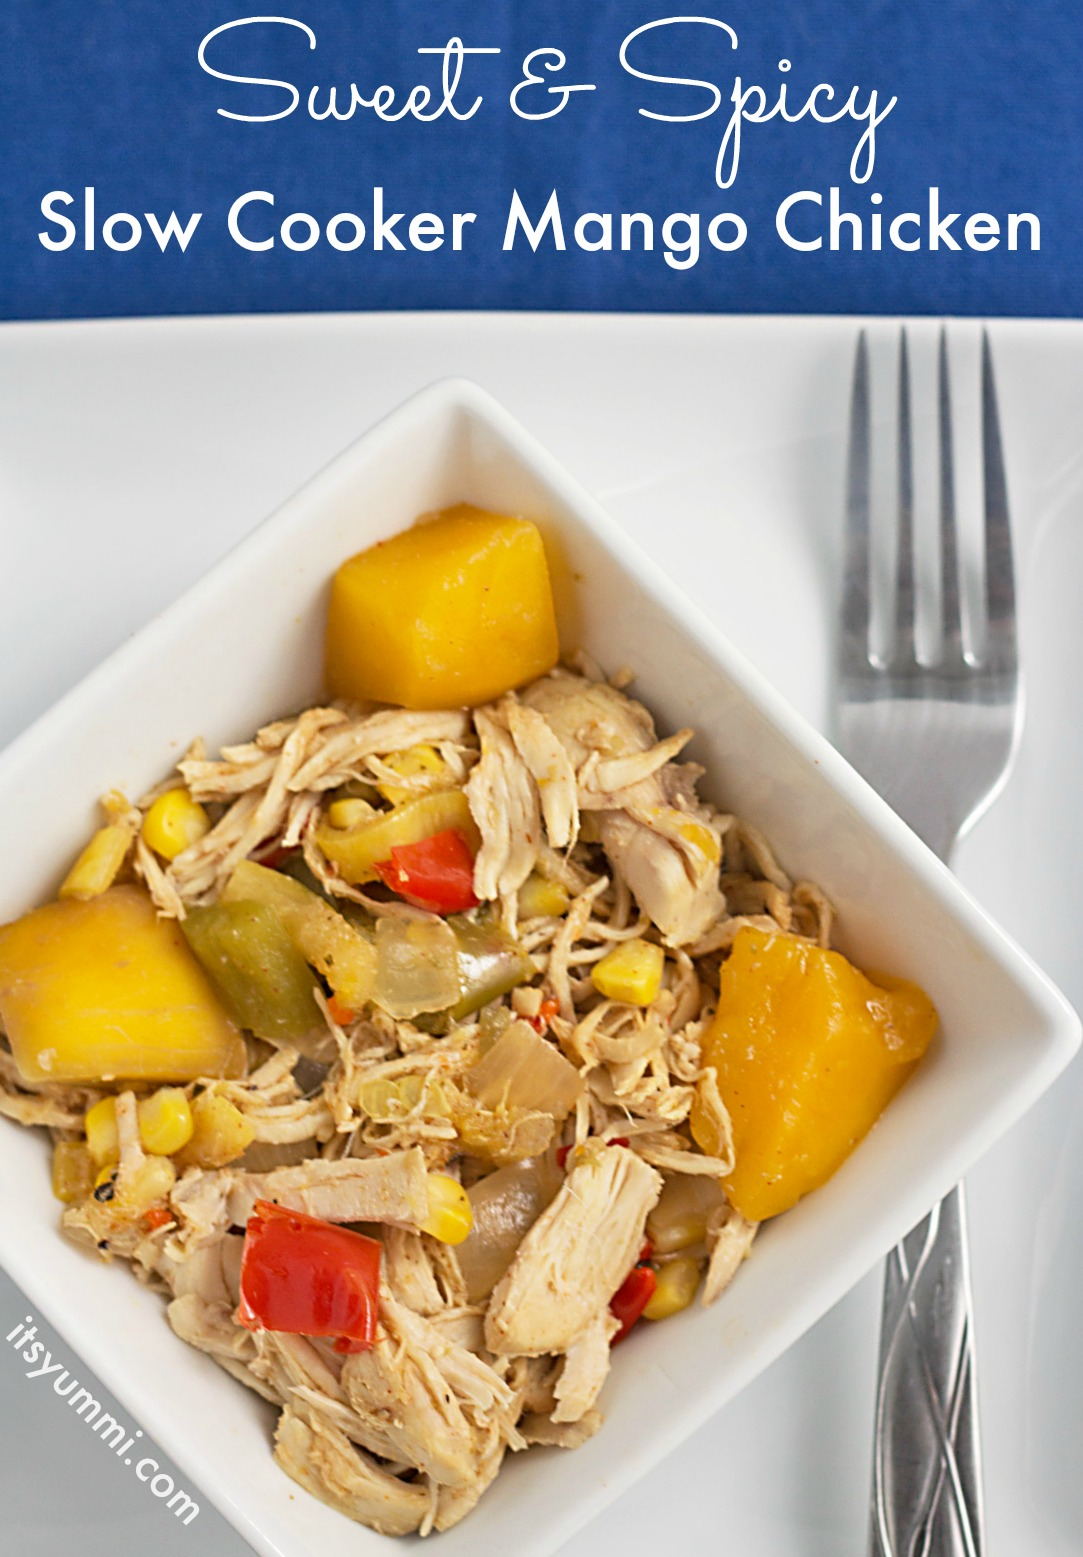 This healthy mango chicken recipe is made in a slow cooker or Crockpot. It uses just 5 ingredients (plus spices), is low fat, and Weight Watcher friendly!